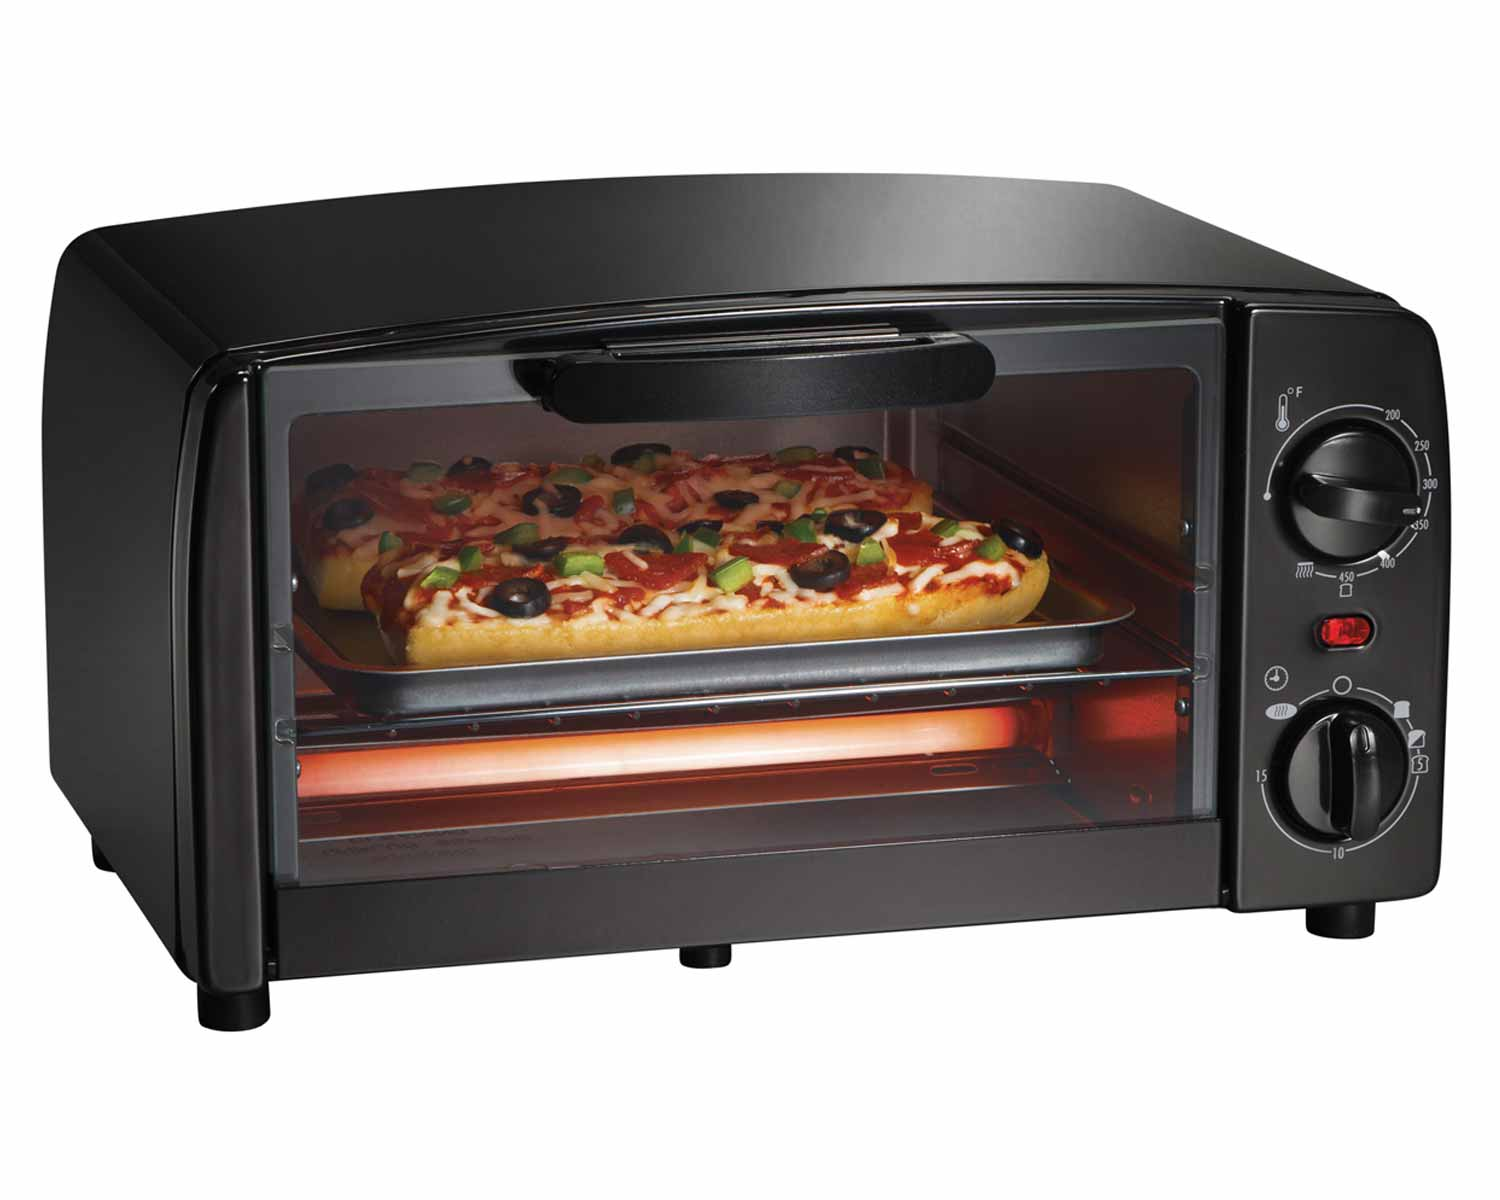 Toaster Oven Broiler (black)-31118R Small Size